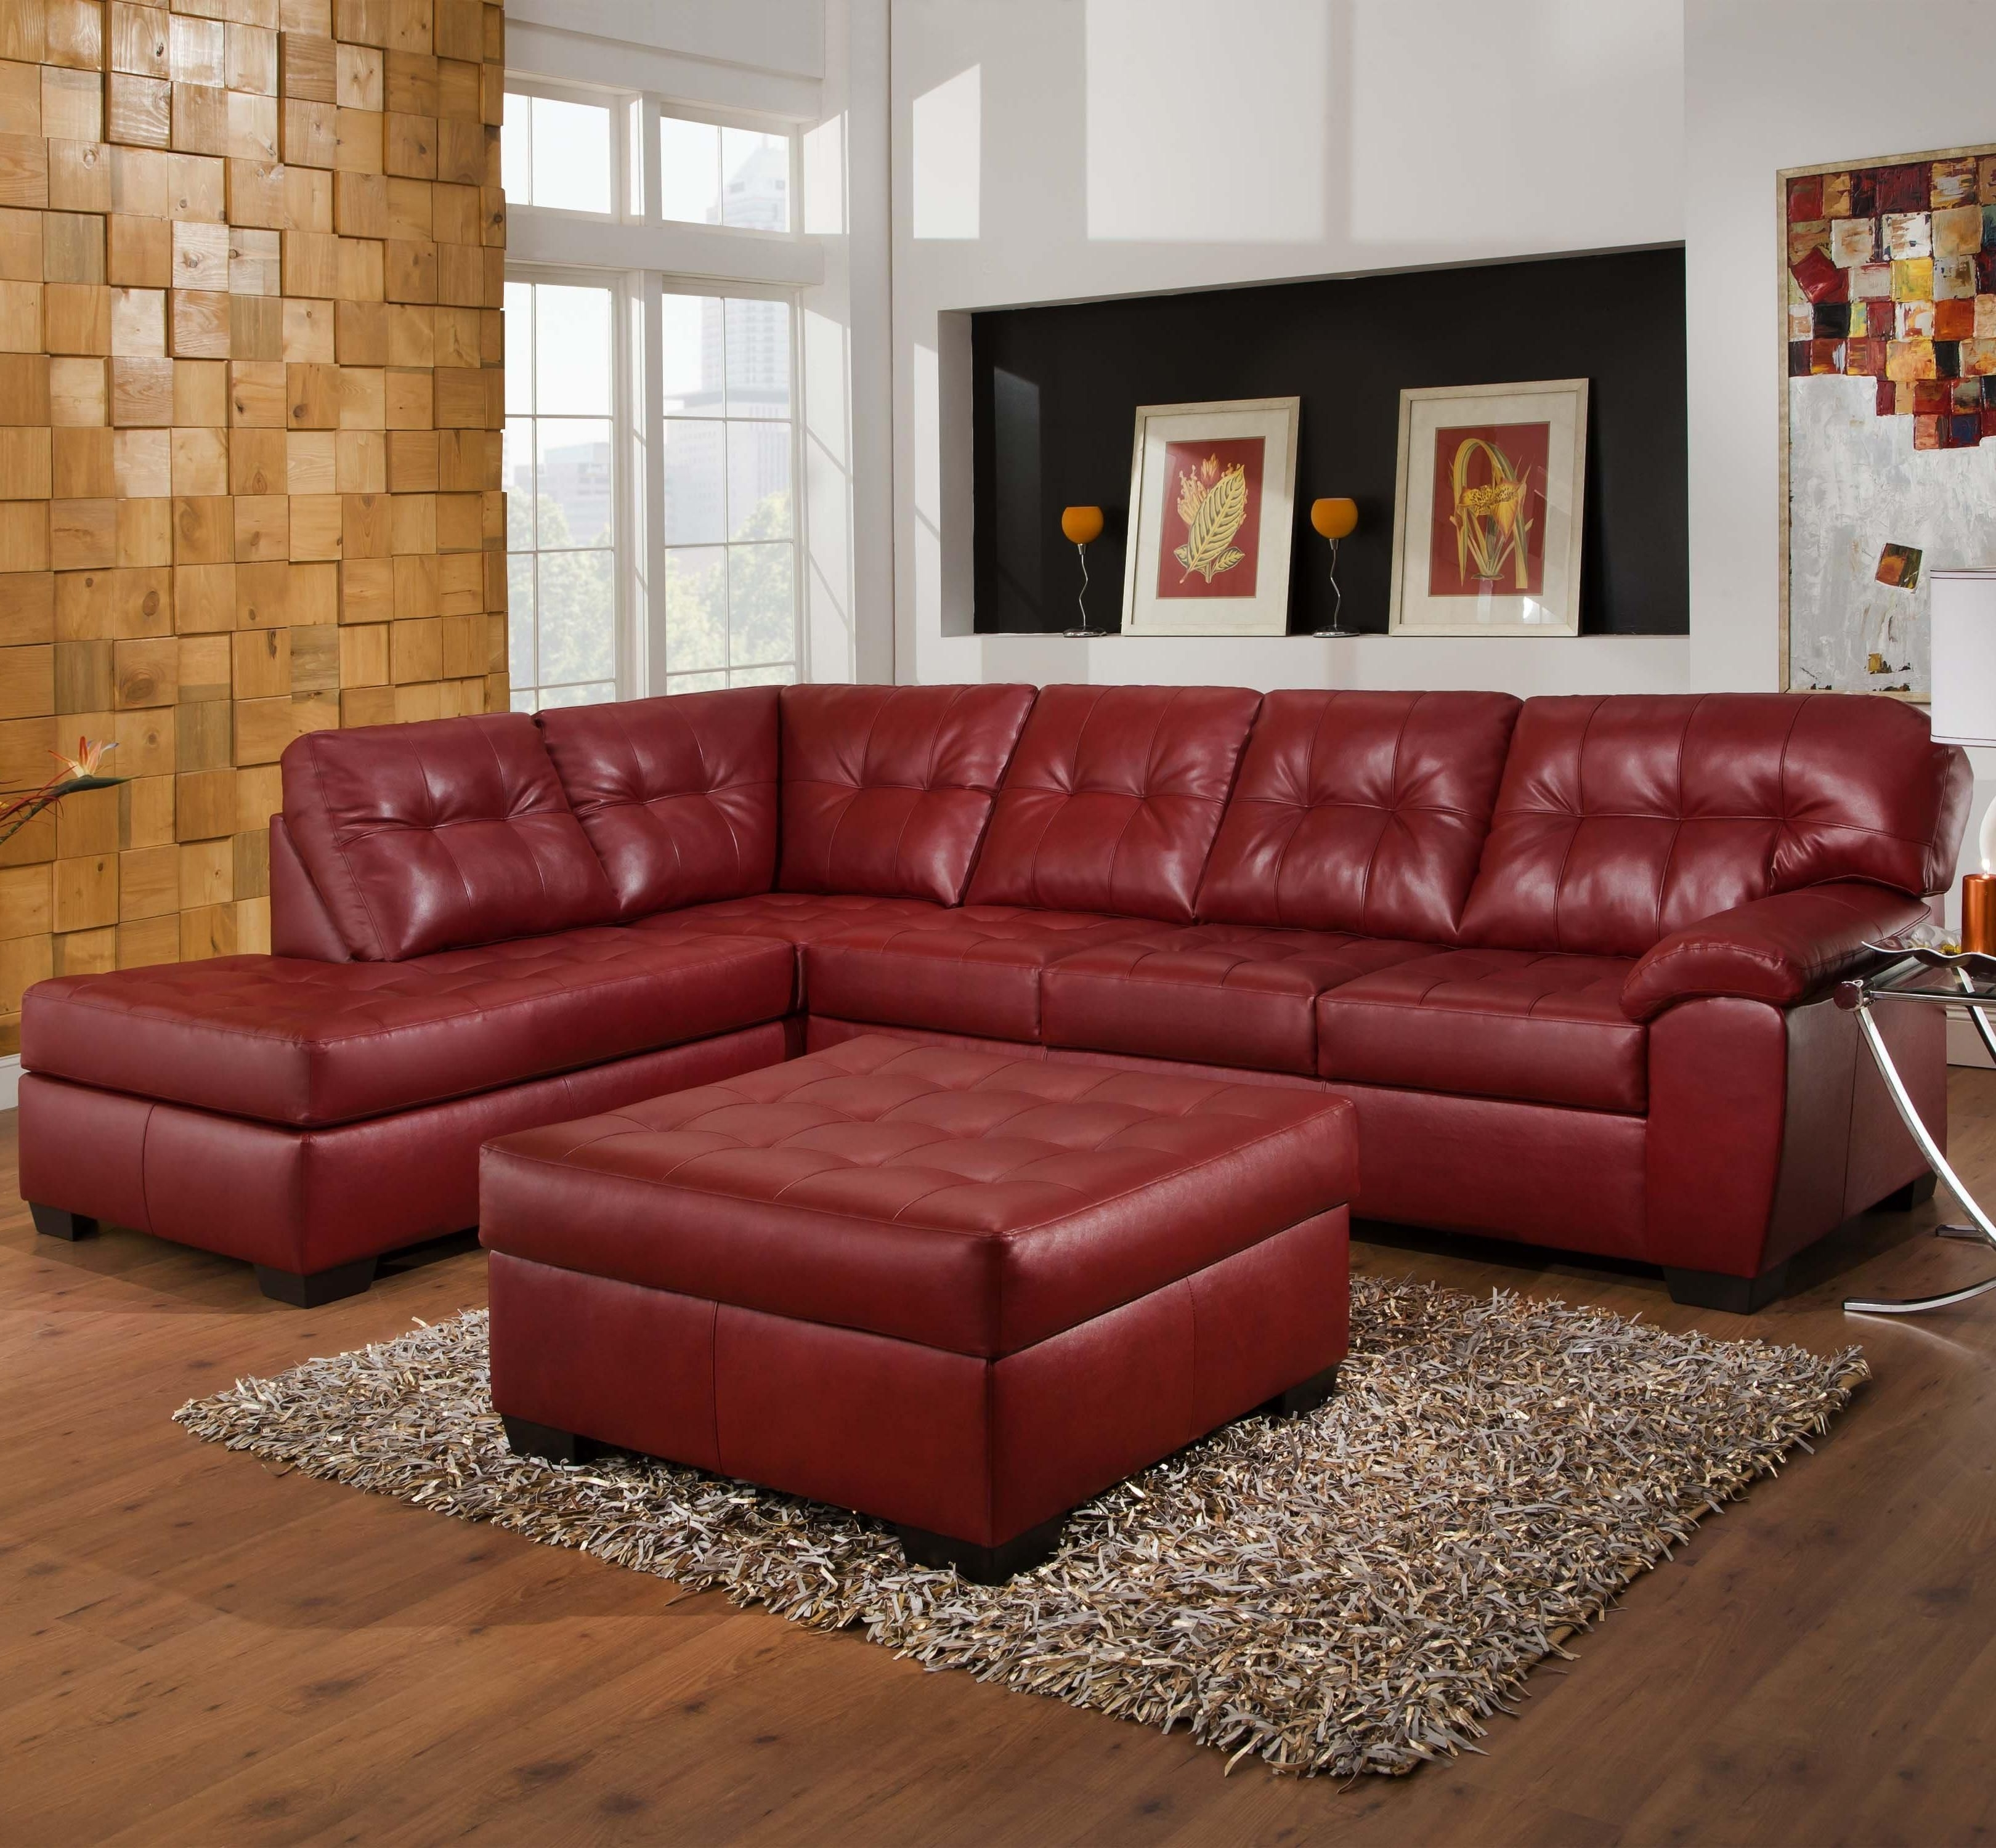 Newest 9569 2 Piece Sectional With Tufted Seats & Backsimmons Within Grand Rapids Mi Sectional Sofas (View 13 of 20)